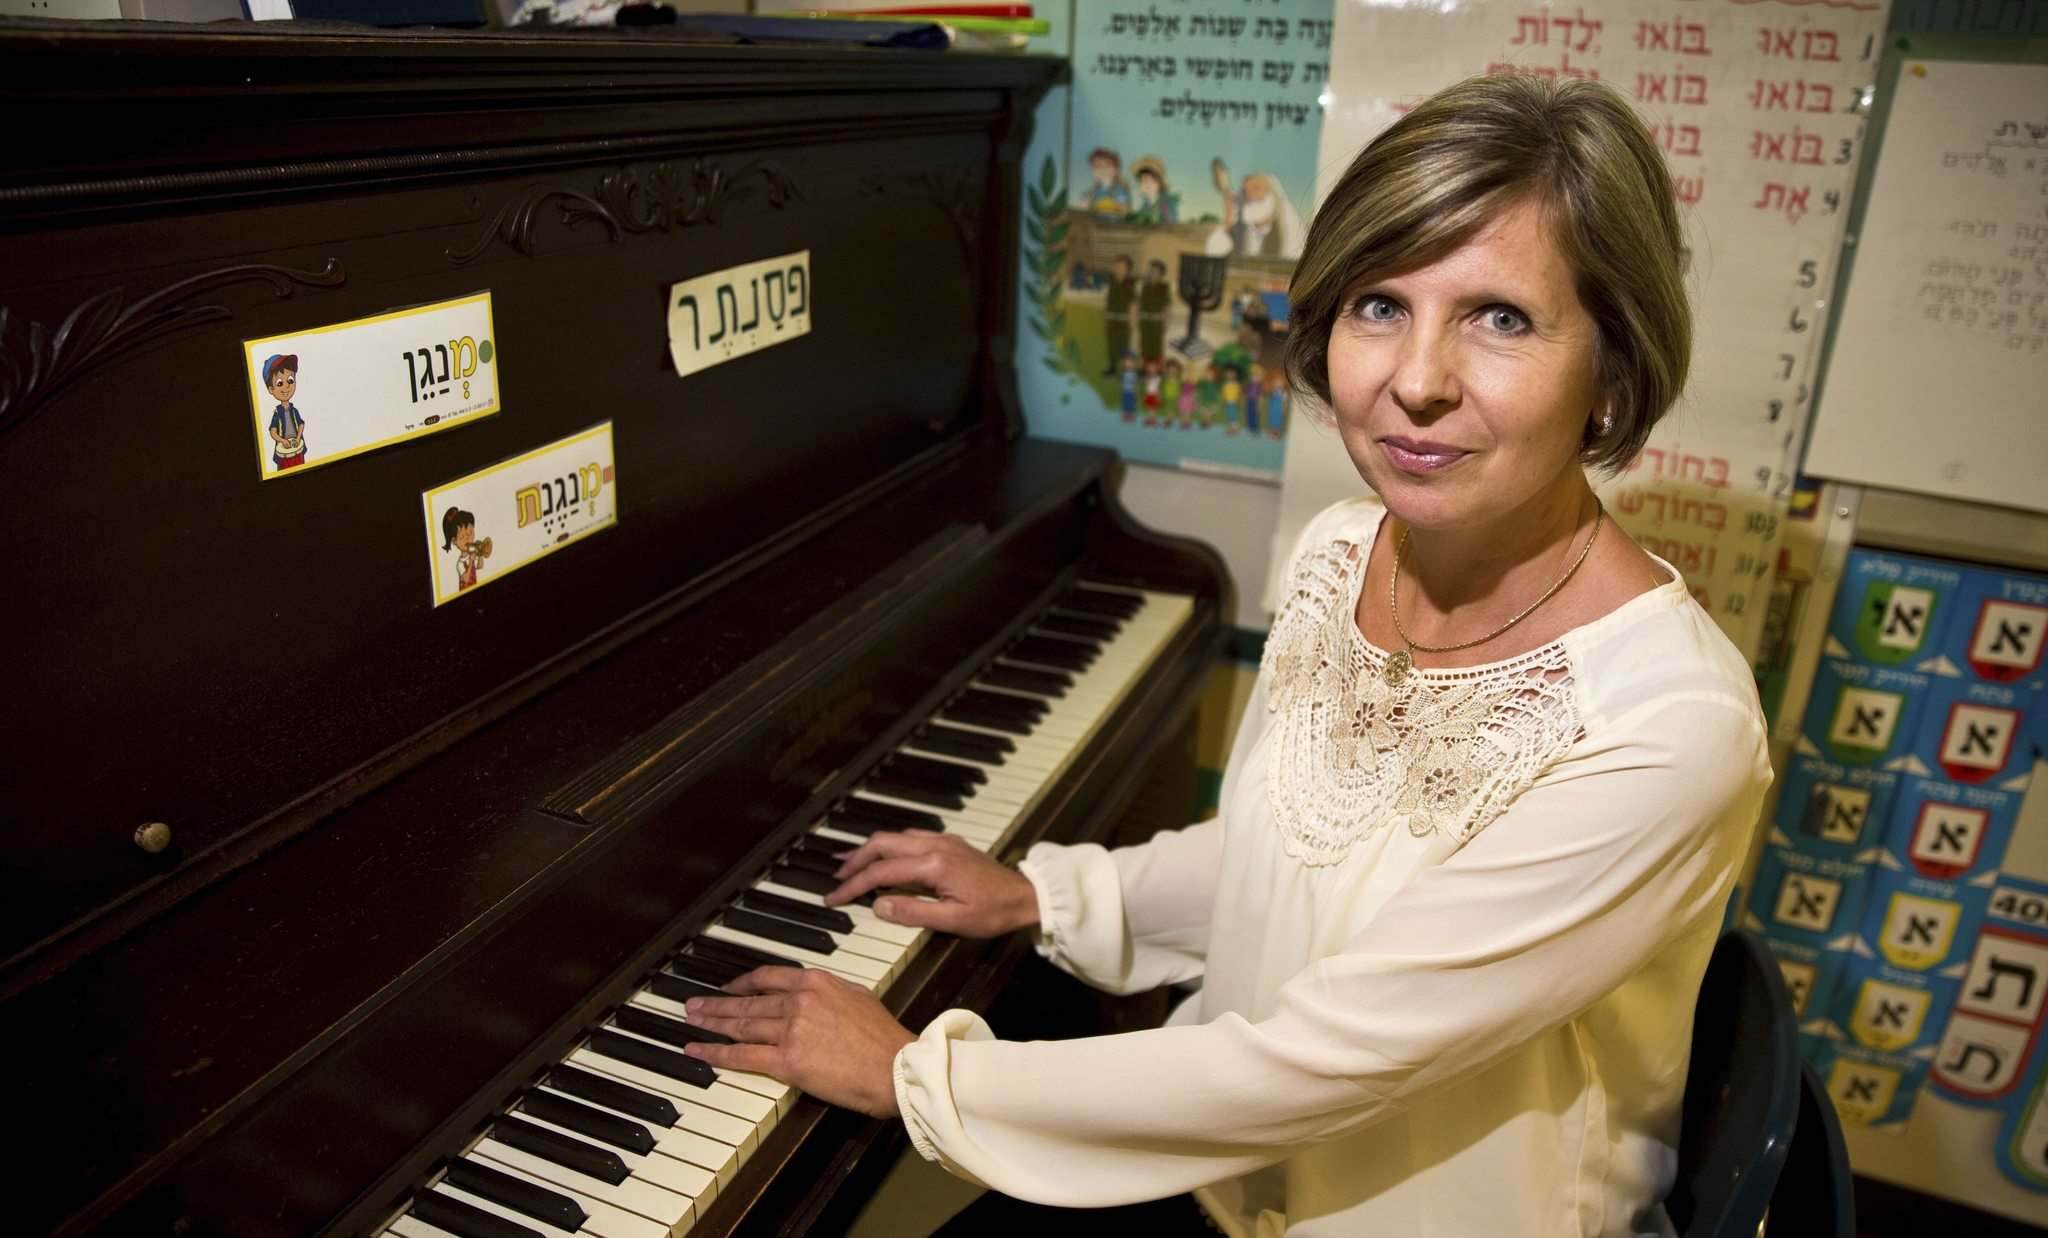 MIKE DEAL / WINNIPEG FREE PRESS</p><p>Tatyana Smolyaninov, a teacher at the Gray Academy of Jewish Education, was in a video of her playing a piano on a street in New York City last spring that has gone viral.</p></p>